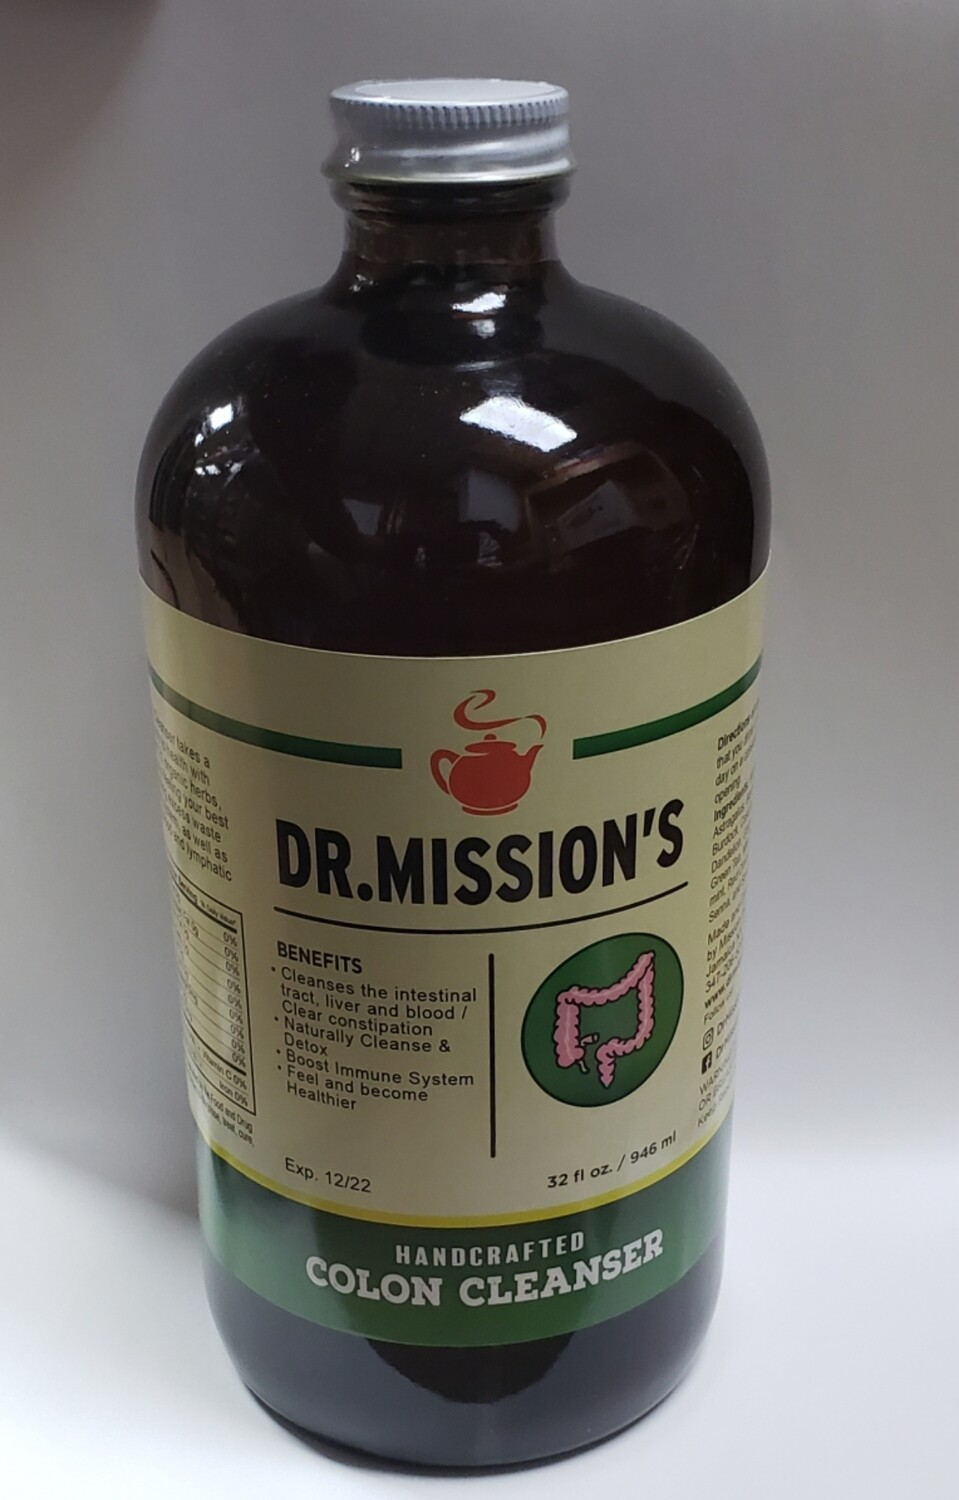 Dr. Mission's Handcrafted Colon Cleanser 32oz